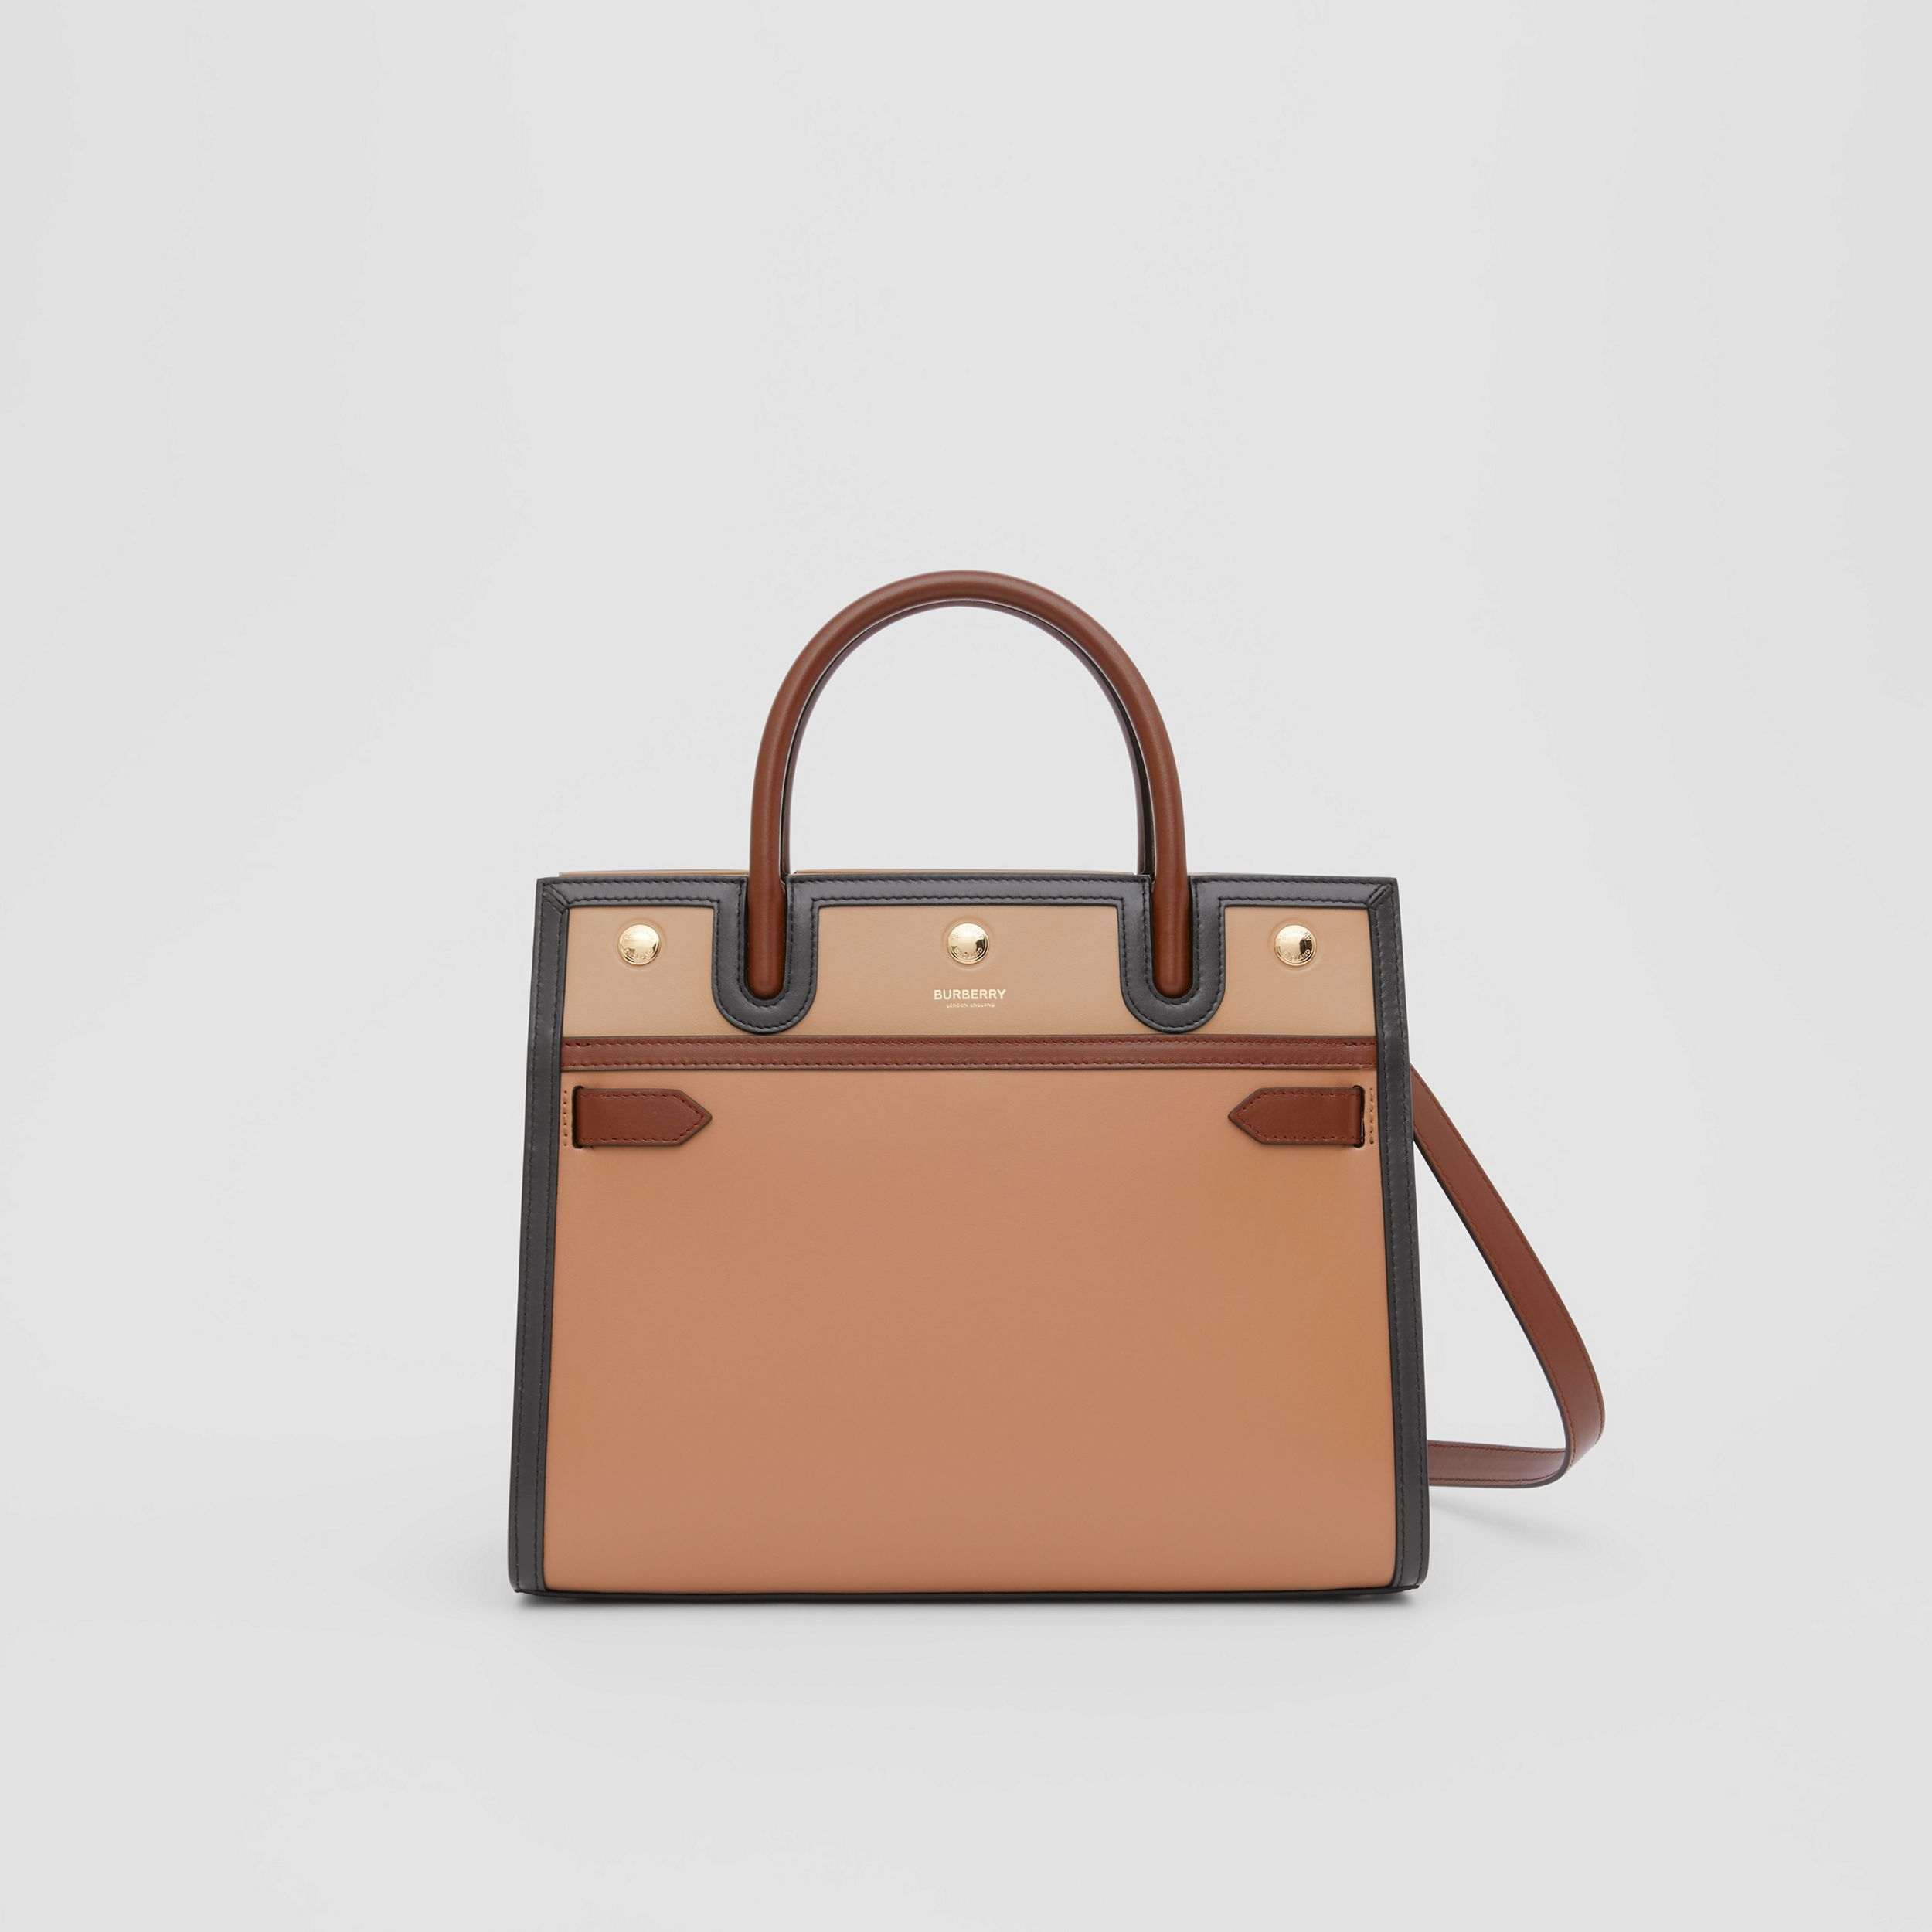 Small Leather Two-handle Title Bag in Soft Fawn - Women | Burberry - 1